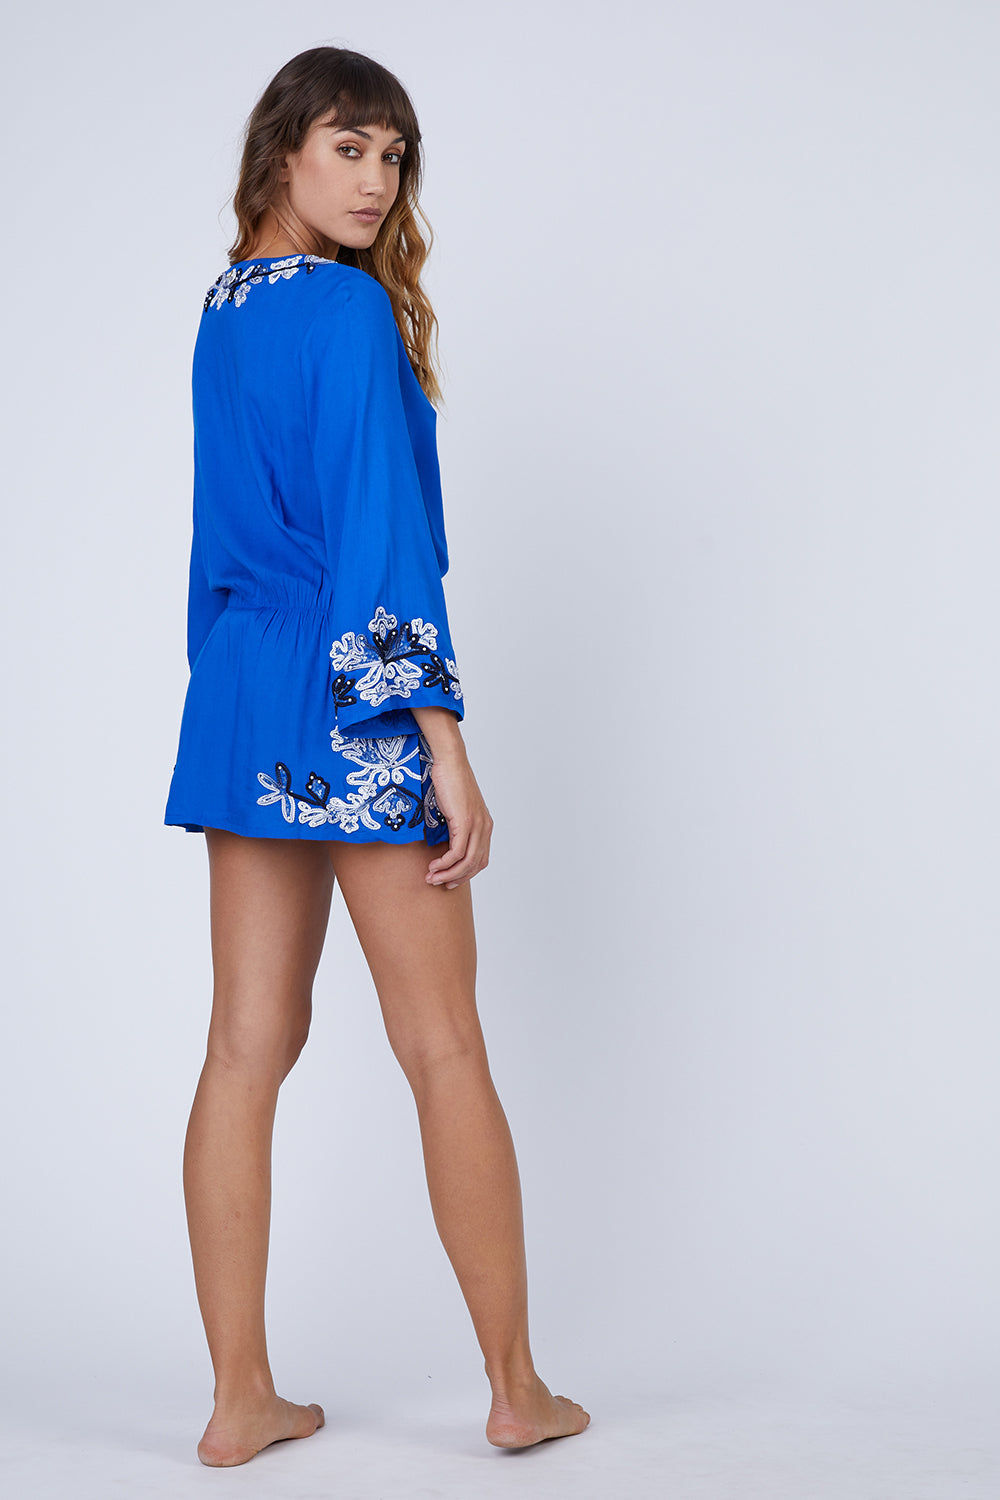 AMITA NAITHANI Floral Crush Dress - Blue Dress | Blue| Amita Naithani Floral Crush Dress - Blue. Floral embroidered dress Long sleeves Front tie closure with tassel detail Rayon modal 100% Rayon Hand wash Back View